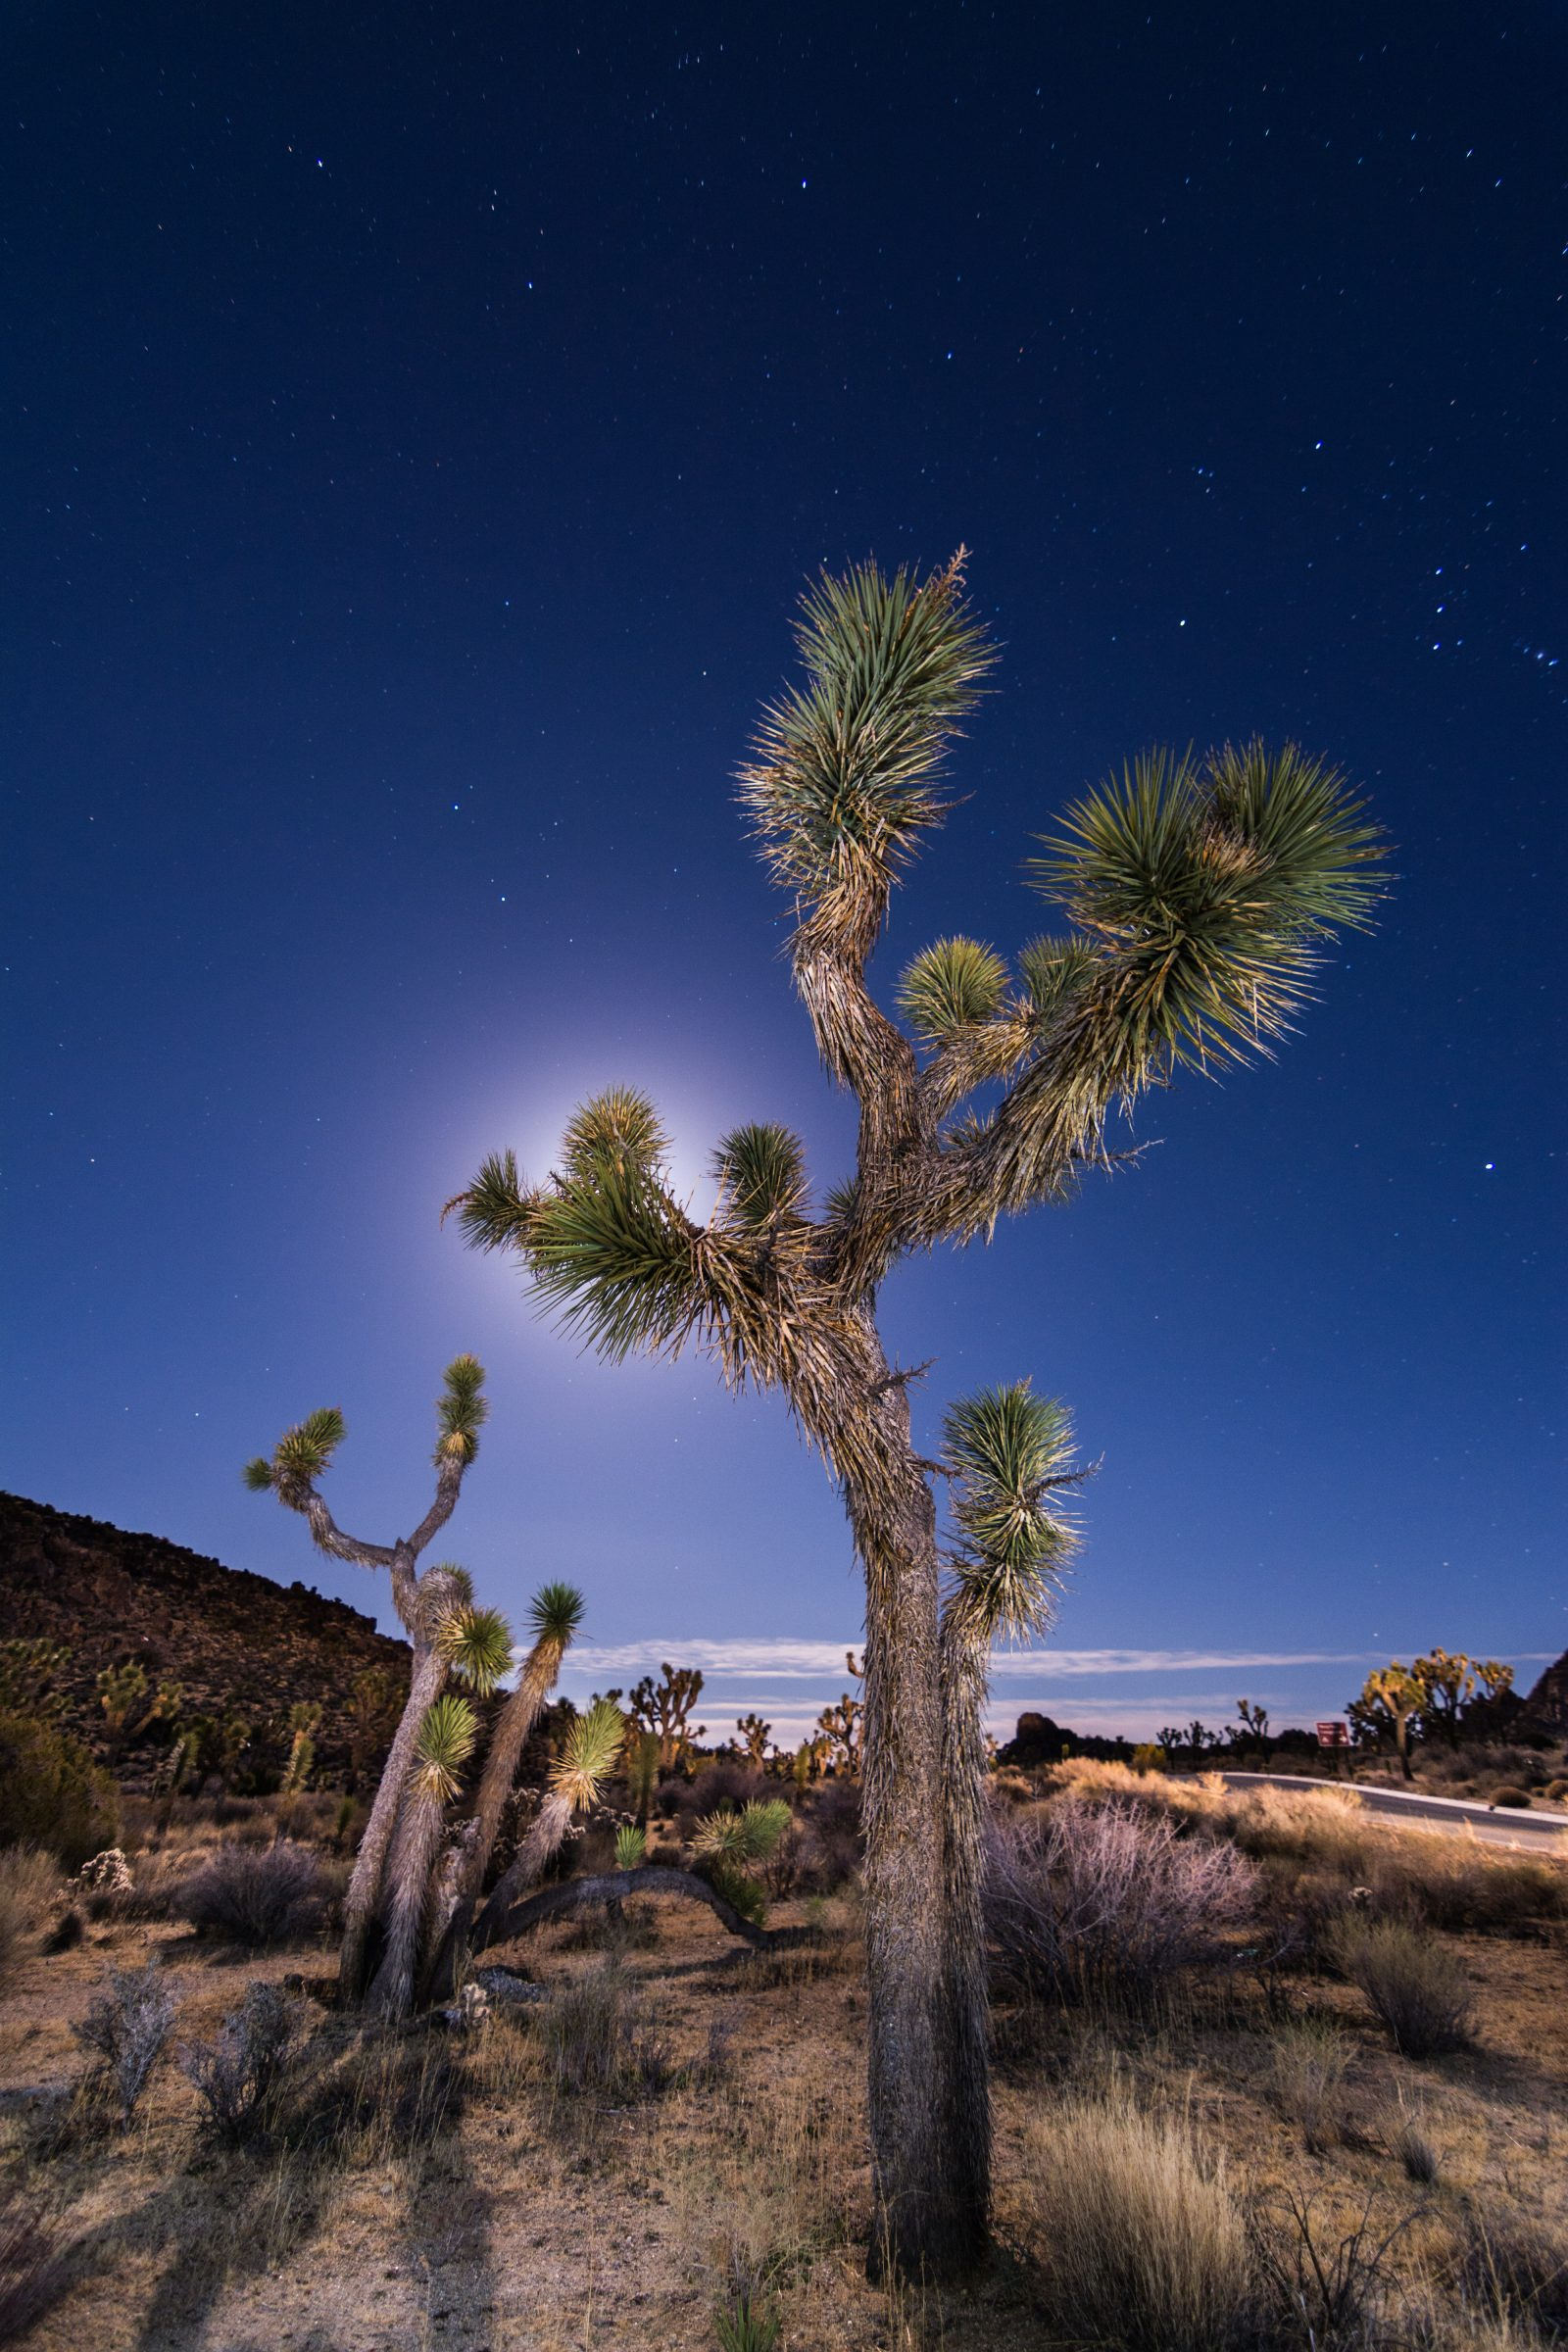 Full Moon Behind a Joshua Tree